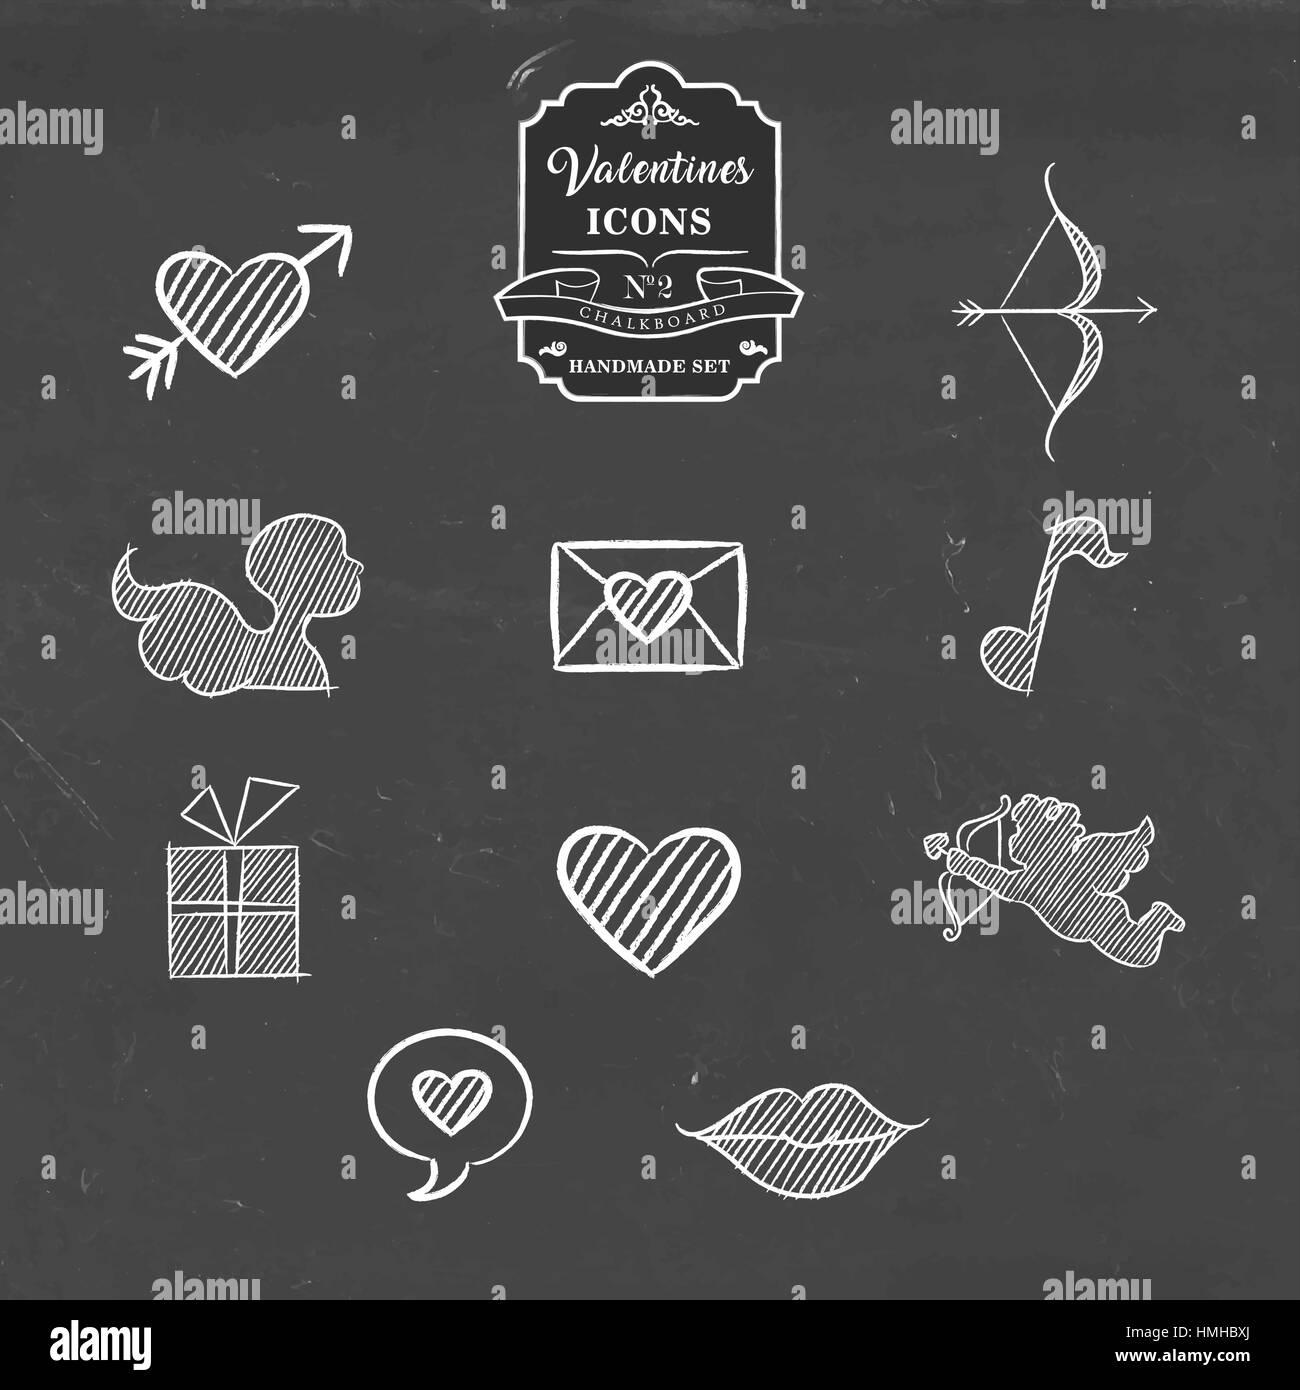 Valentines Day Hand Drawn Chalkboard Icon Collection Set Of Outline